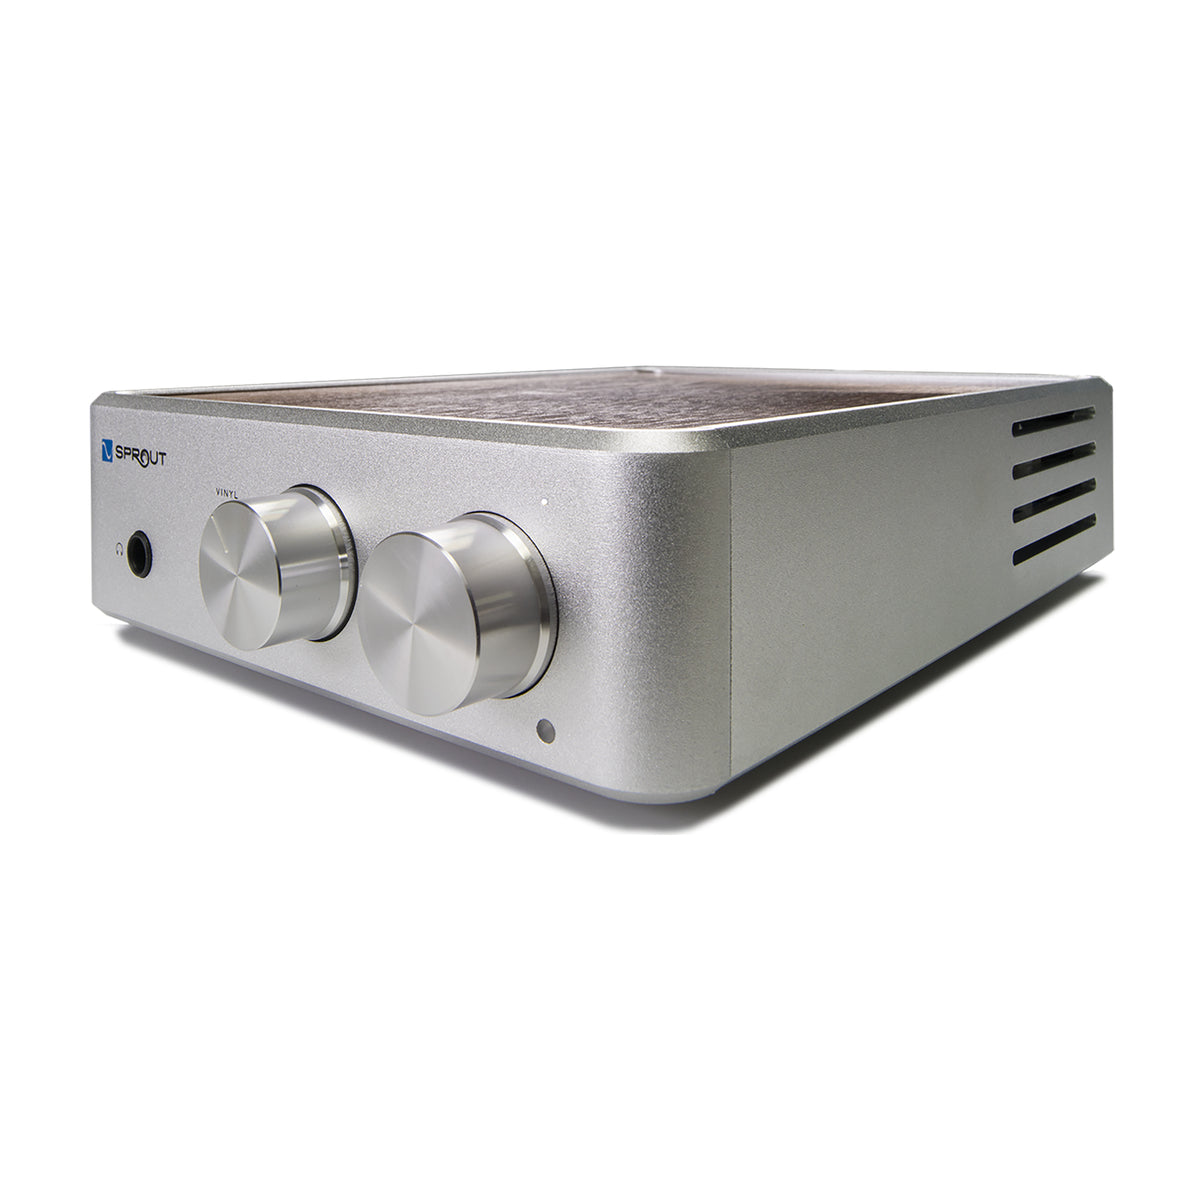 PS Audio: Sprout100 - Amp, Phono Preamp, DAC, Bluetooth